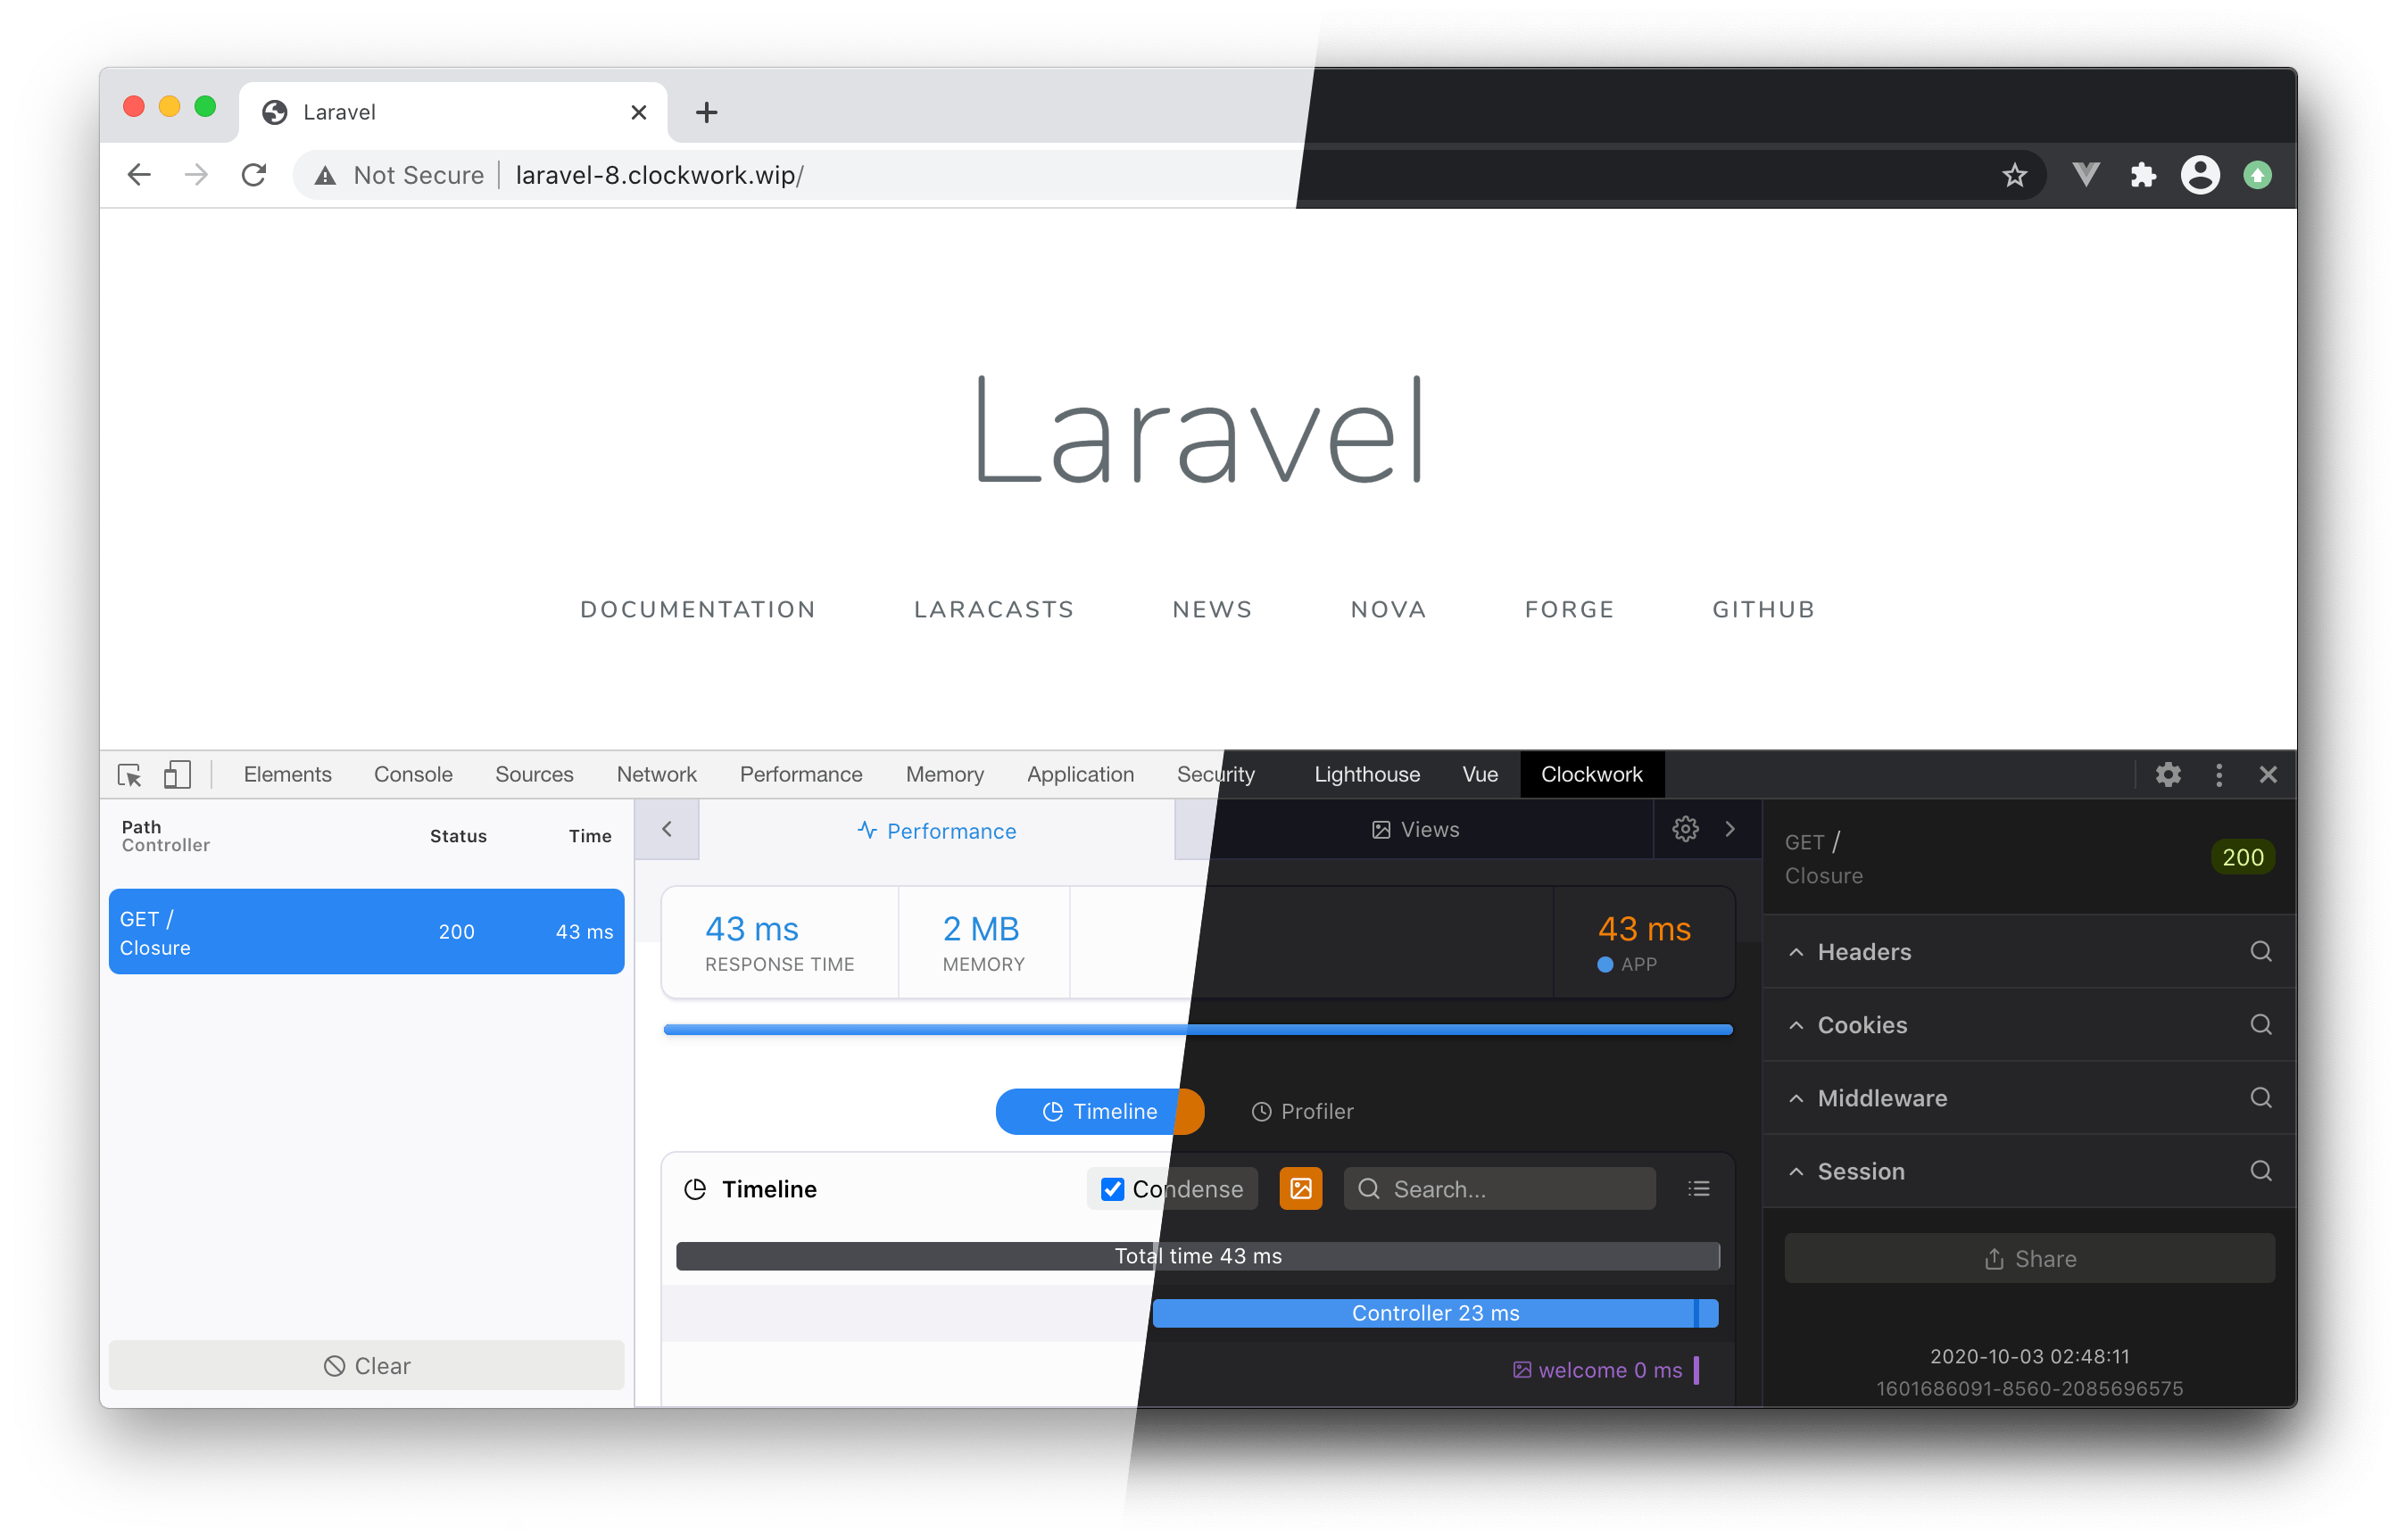 Laravel Clockwork image